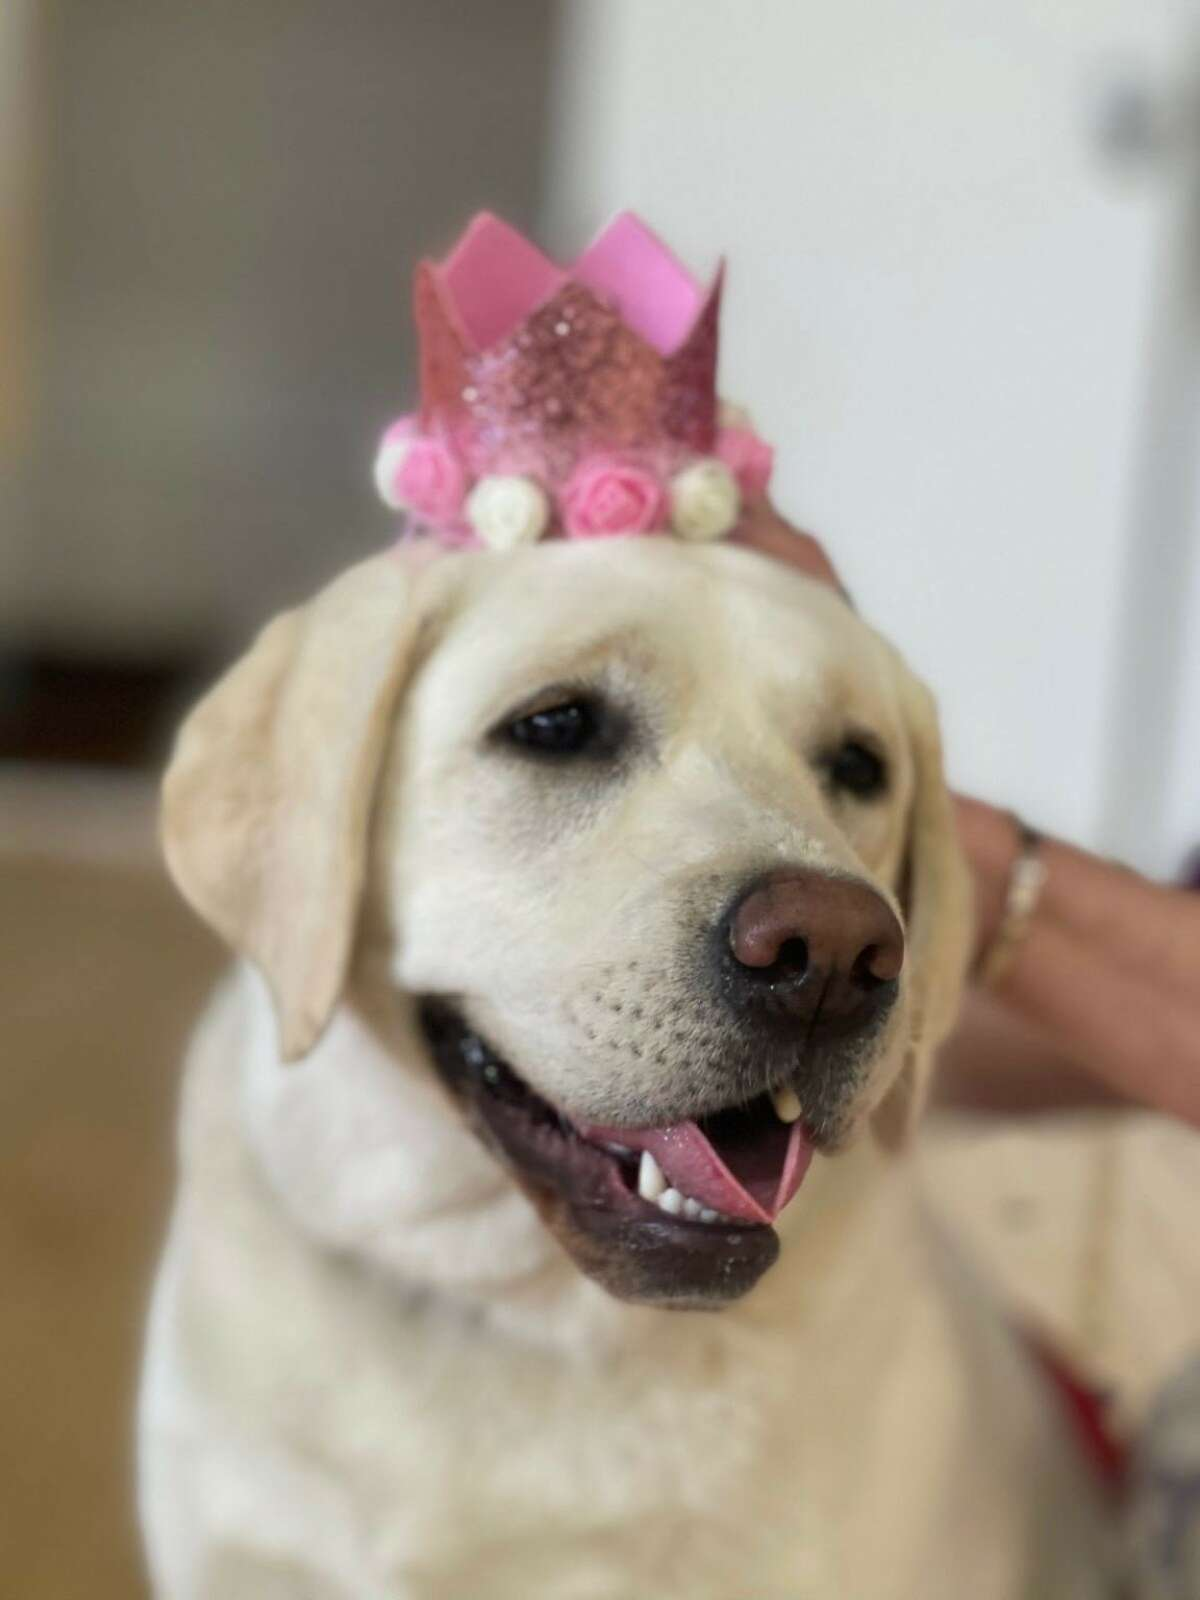 Zinnia, a service dog who works at Bishop Maginn High School in Albany, was crowned prom queen by the senior class.